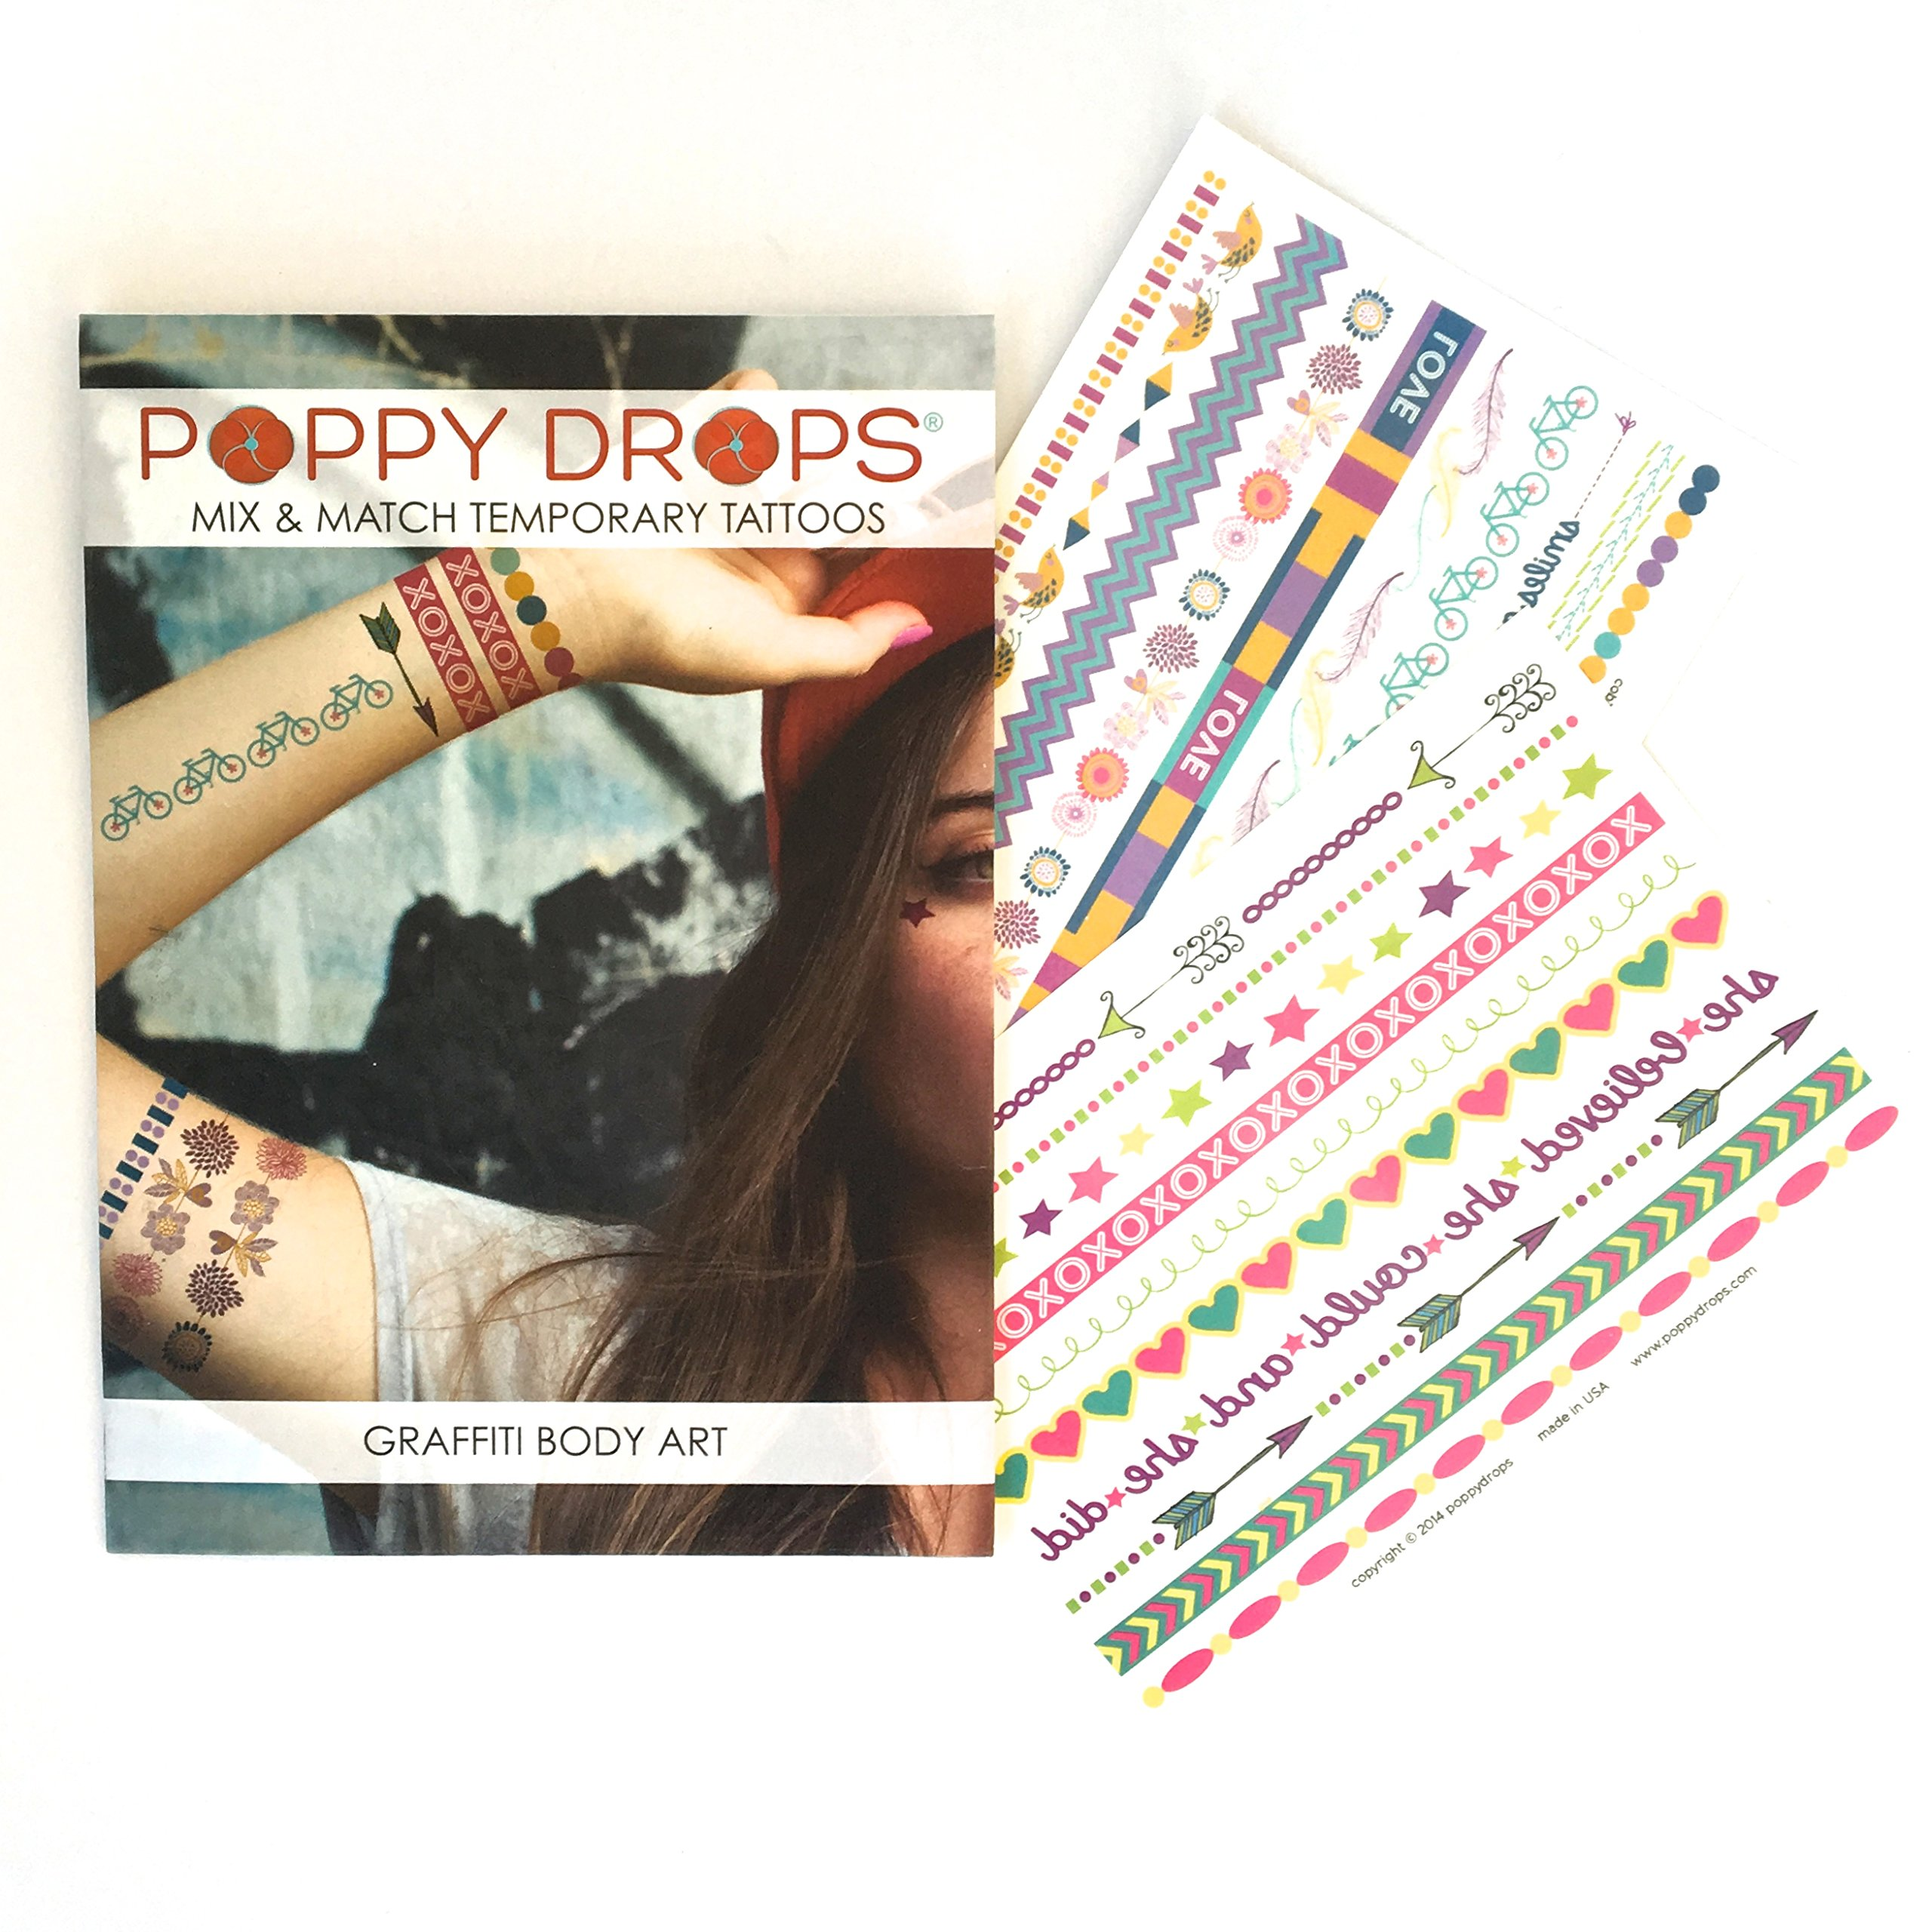 3 Pack Temporary Tattoo Packaged Sets - Express Yourself, Earring Starter & Graffitti Body Art Sets Included by Poppy Drops (Image #3)